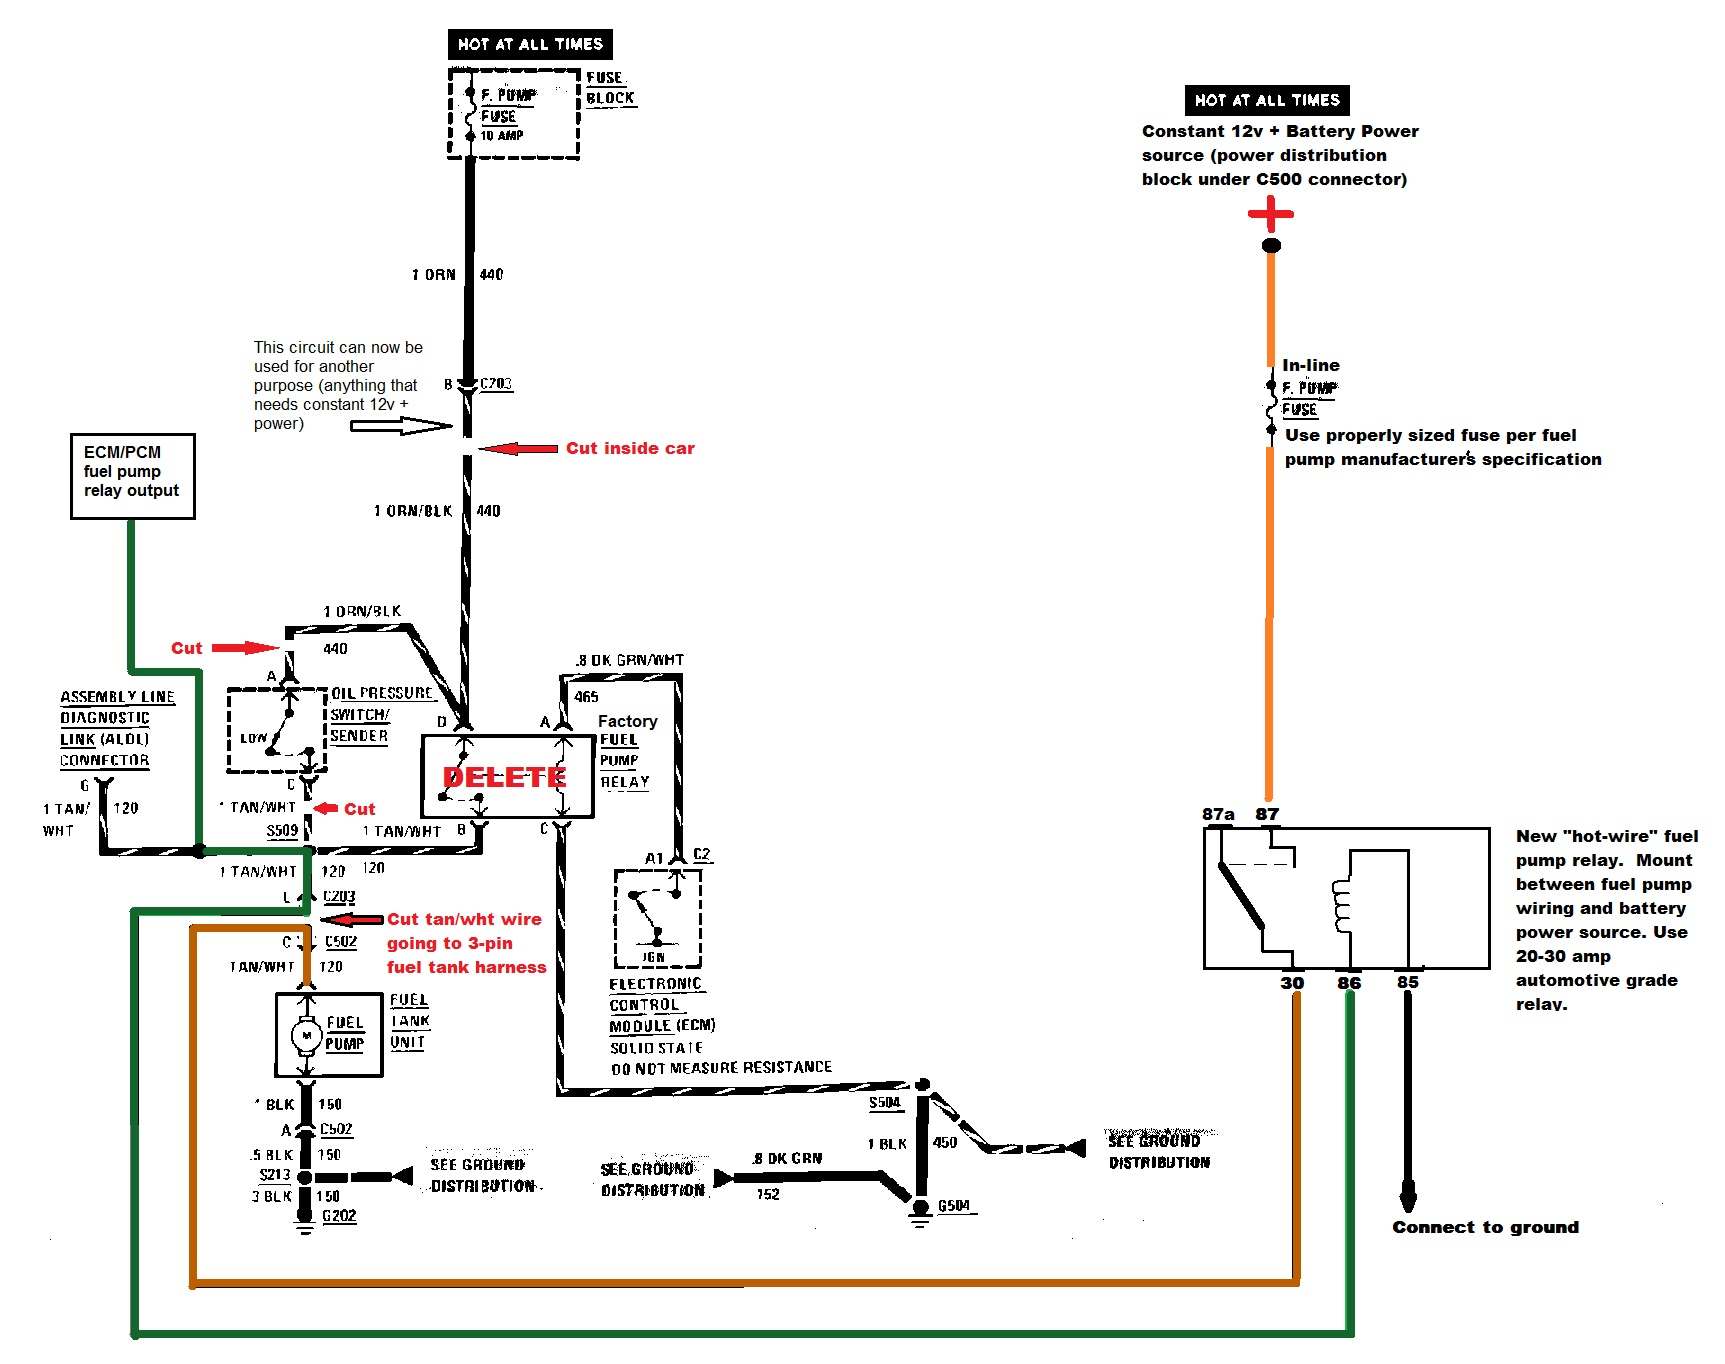 opel fuel pump diagram wiring diagram k8 Vauxhall Fuel Pump Diagram Vauxhall Fuel Pump Diagram #11